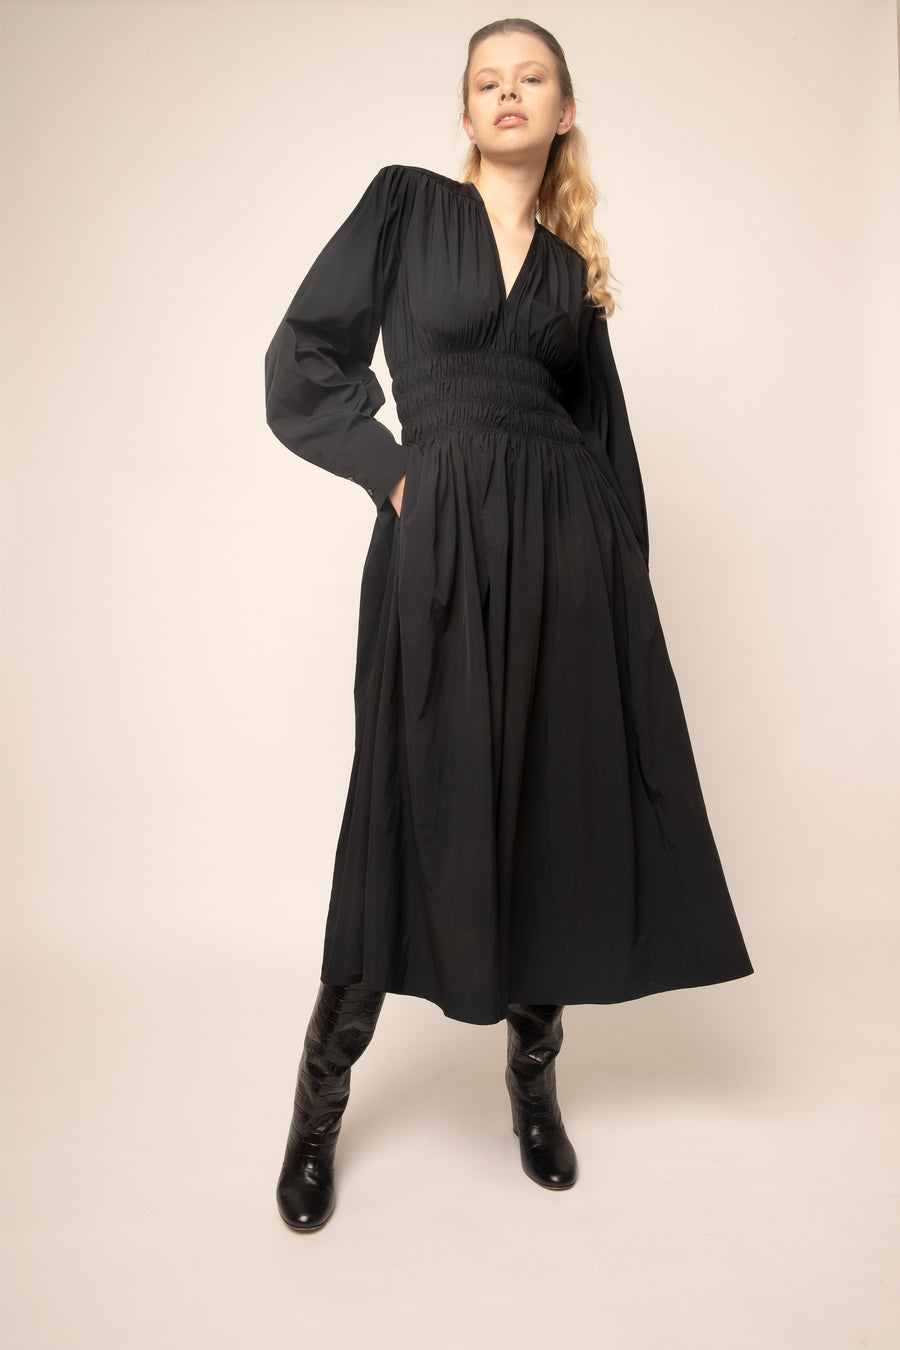 DIANA GATHERED DRESS BLACK MICROFIBER